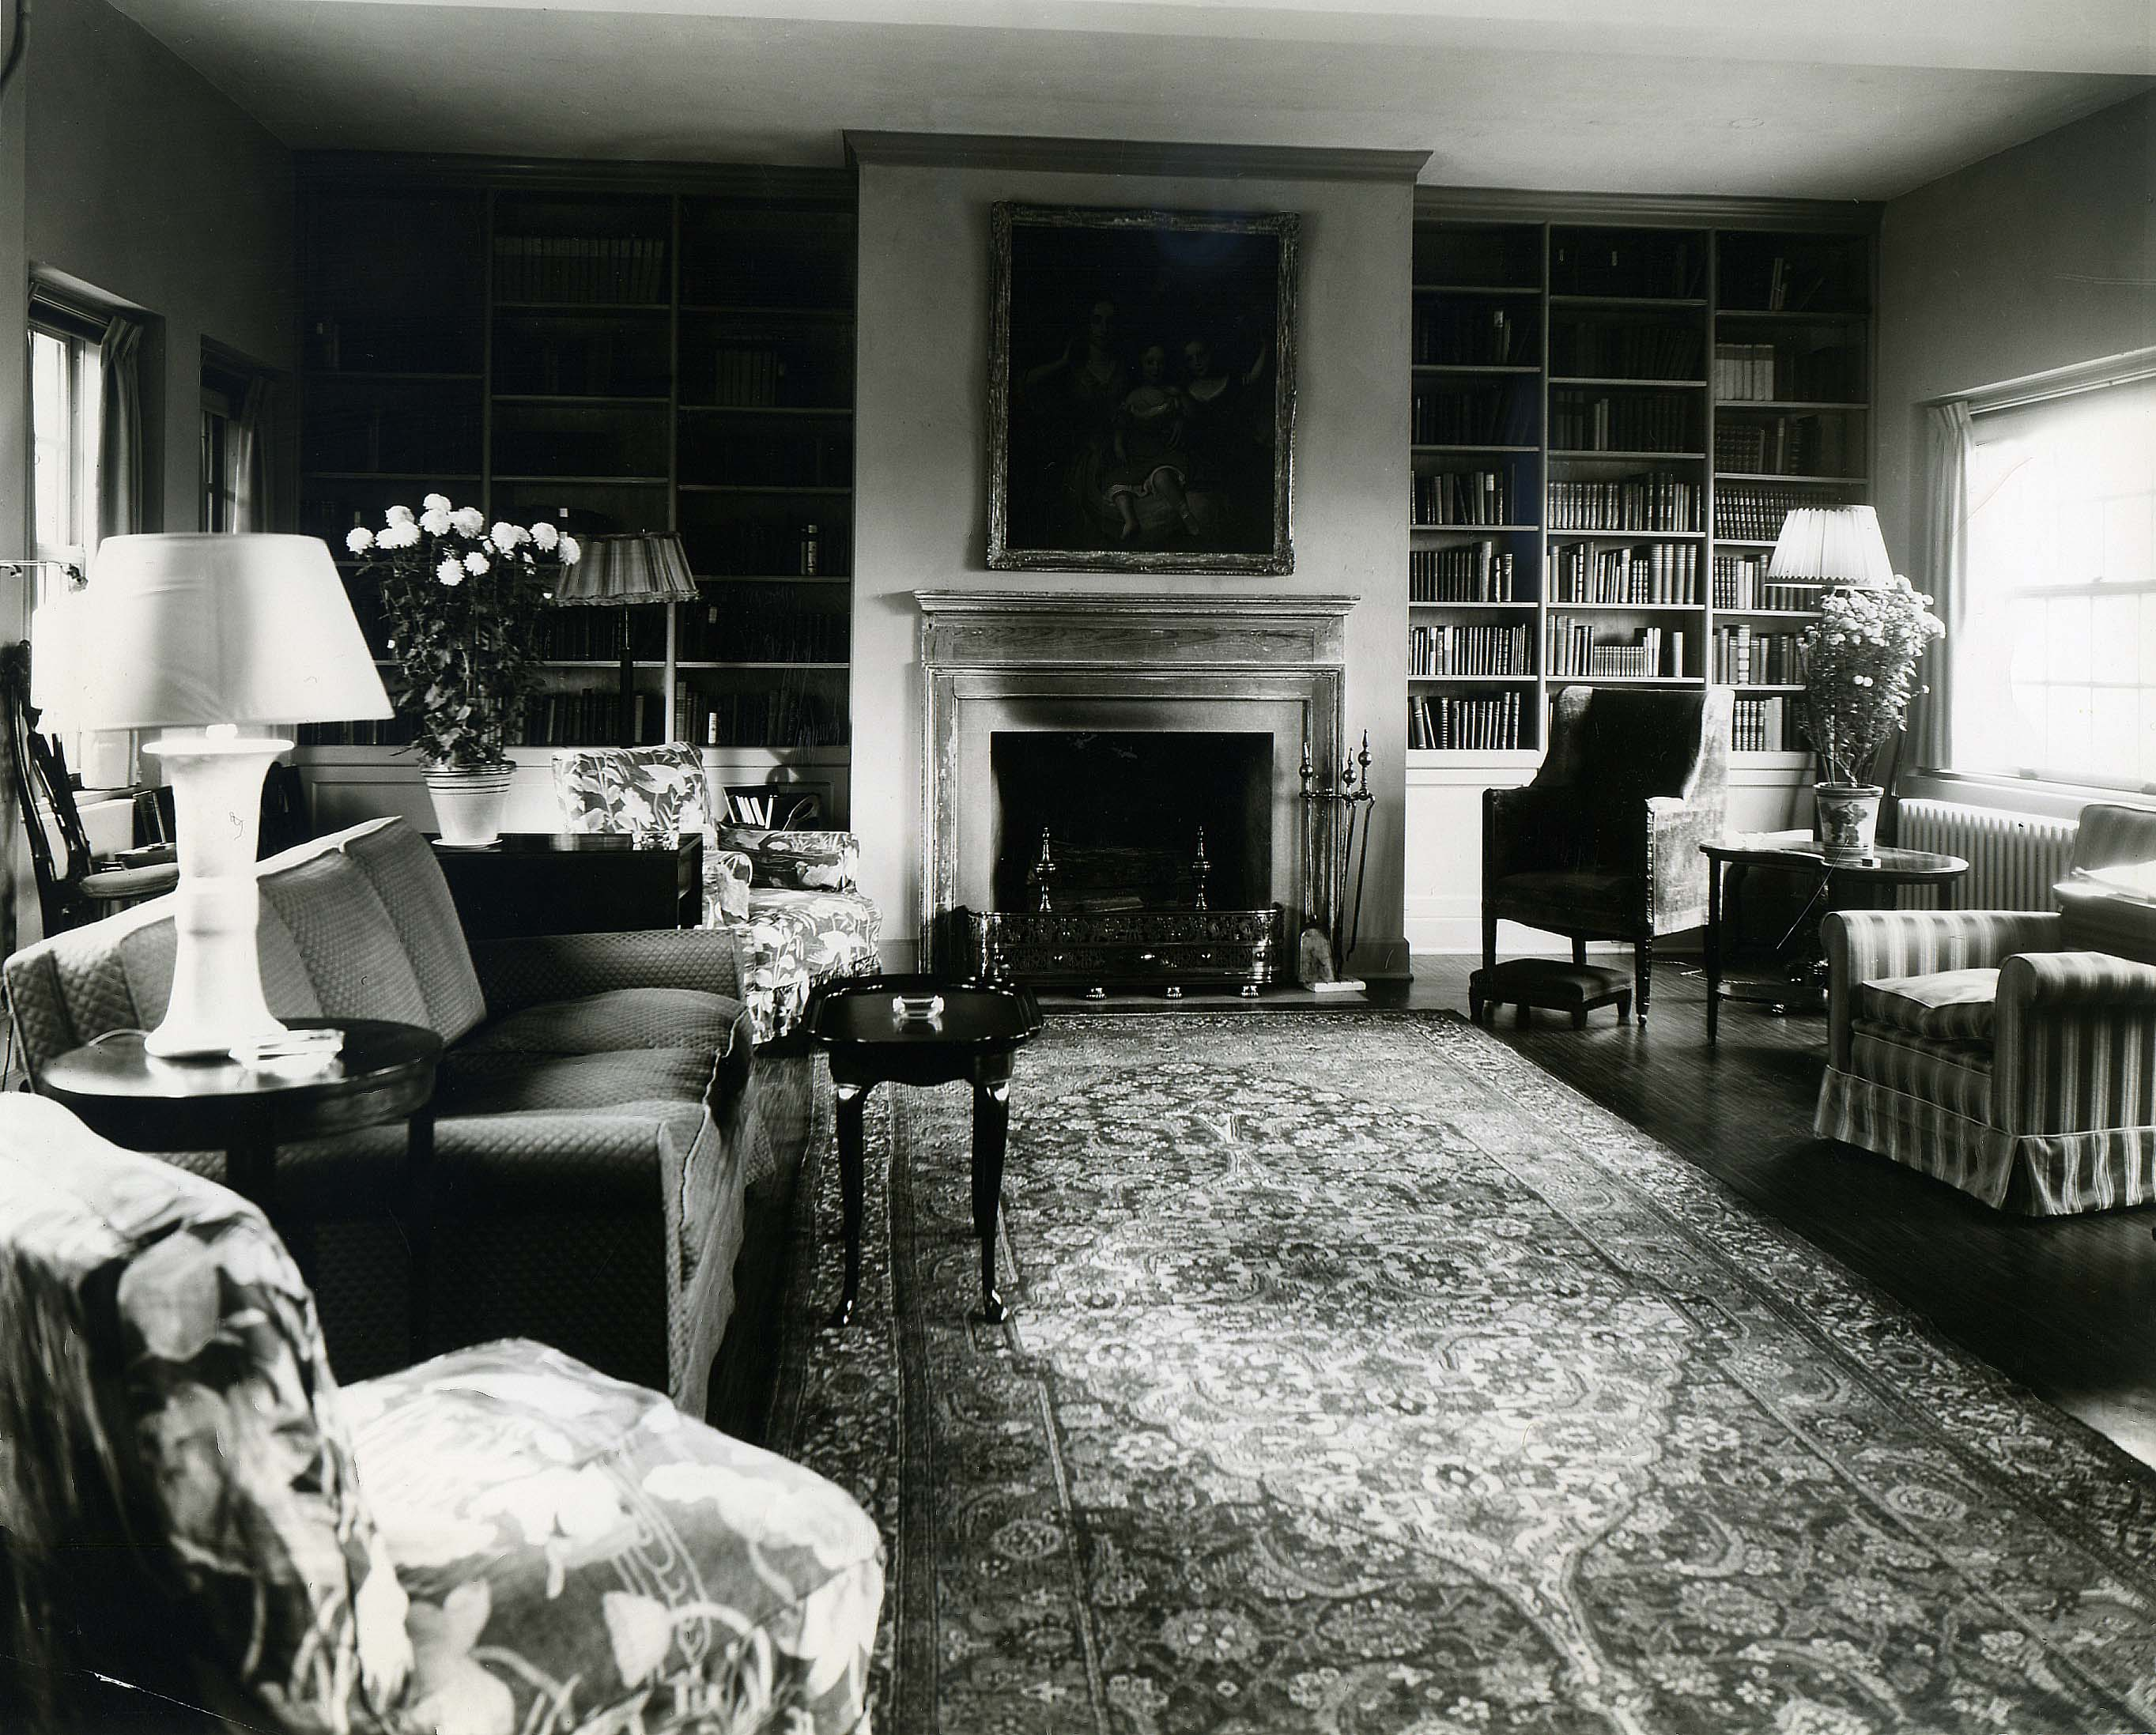 Fellows Building Living Room, 1962